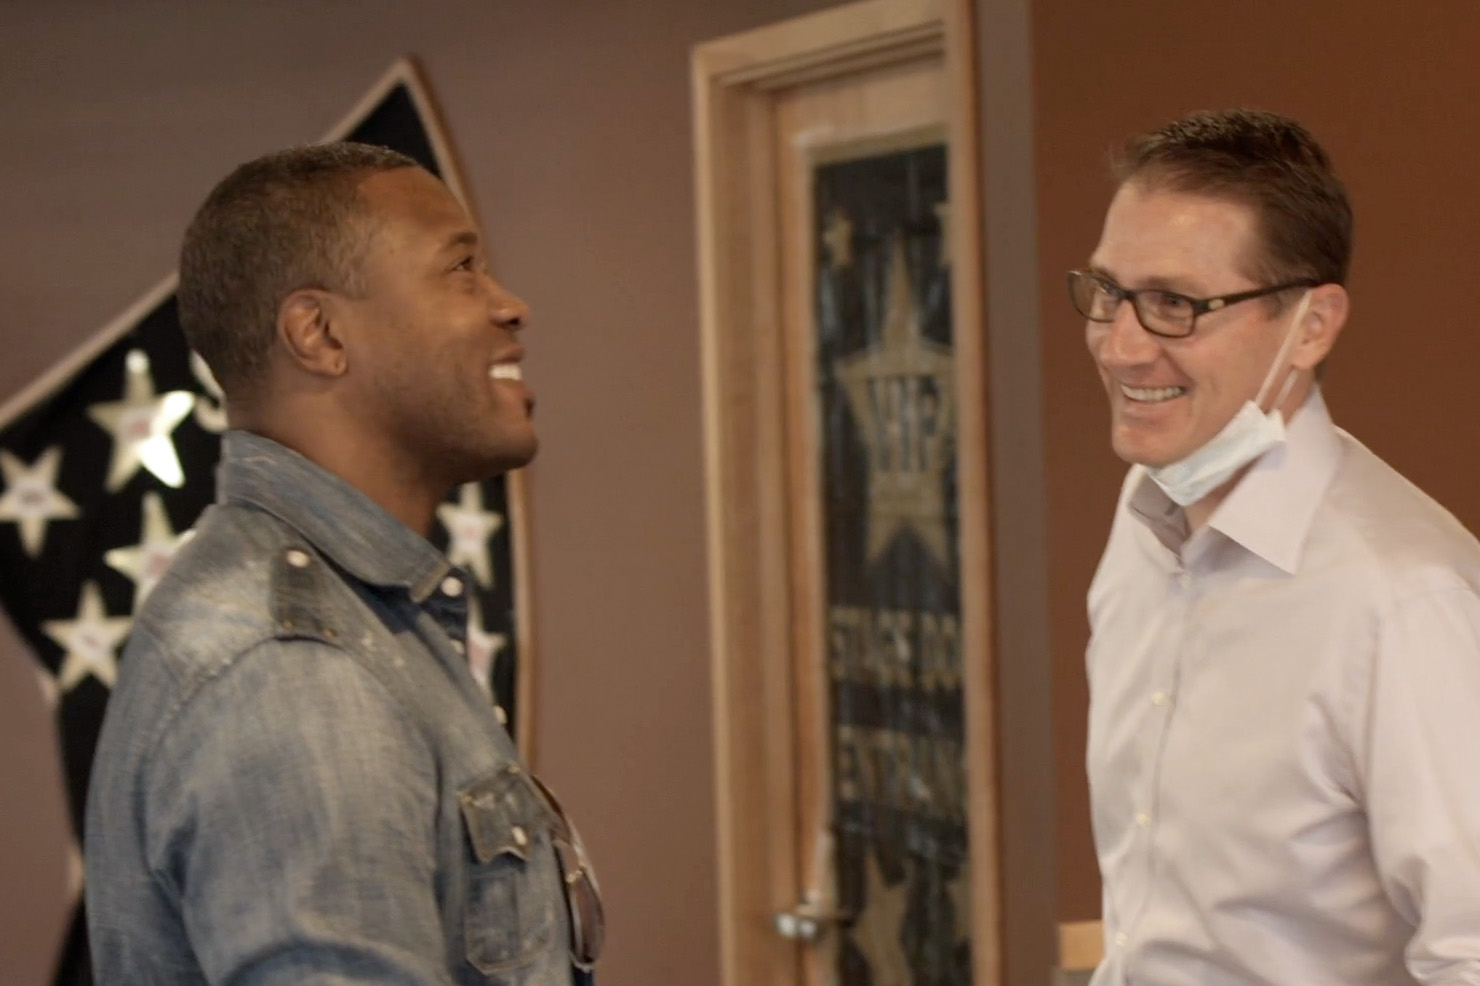 Bryan Roos laughing with Lawyer Milloy